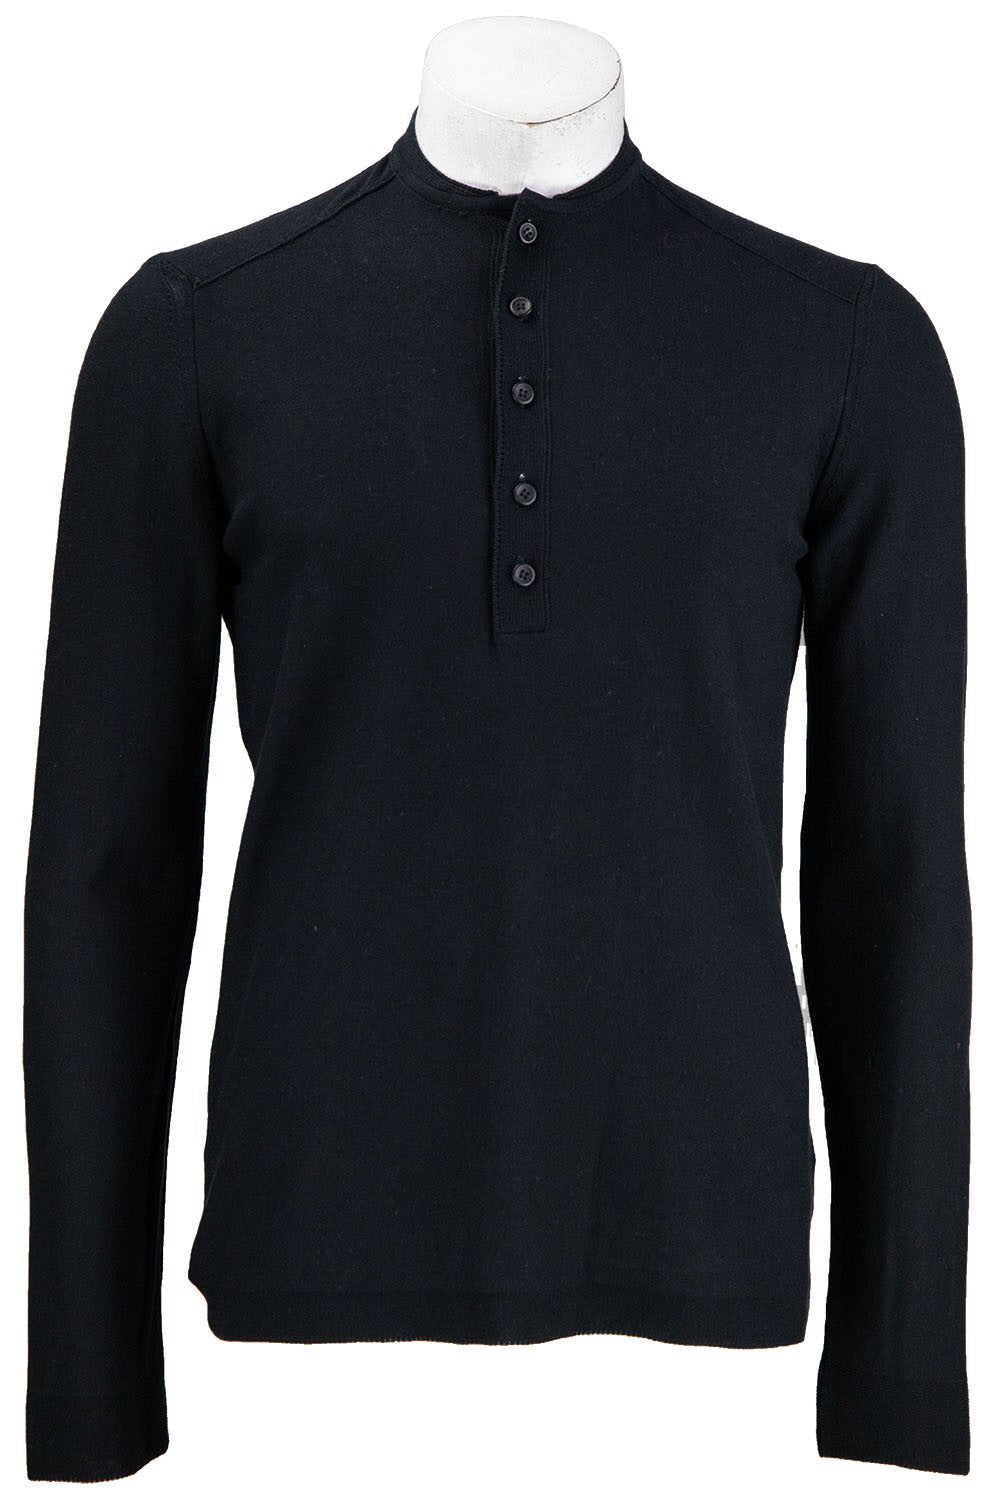 Hannes Roether Black Henley Shirt